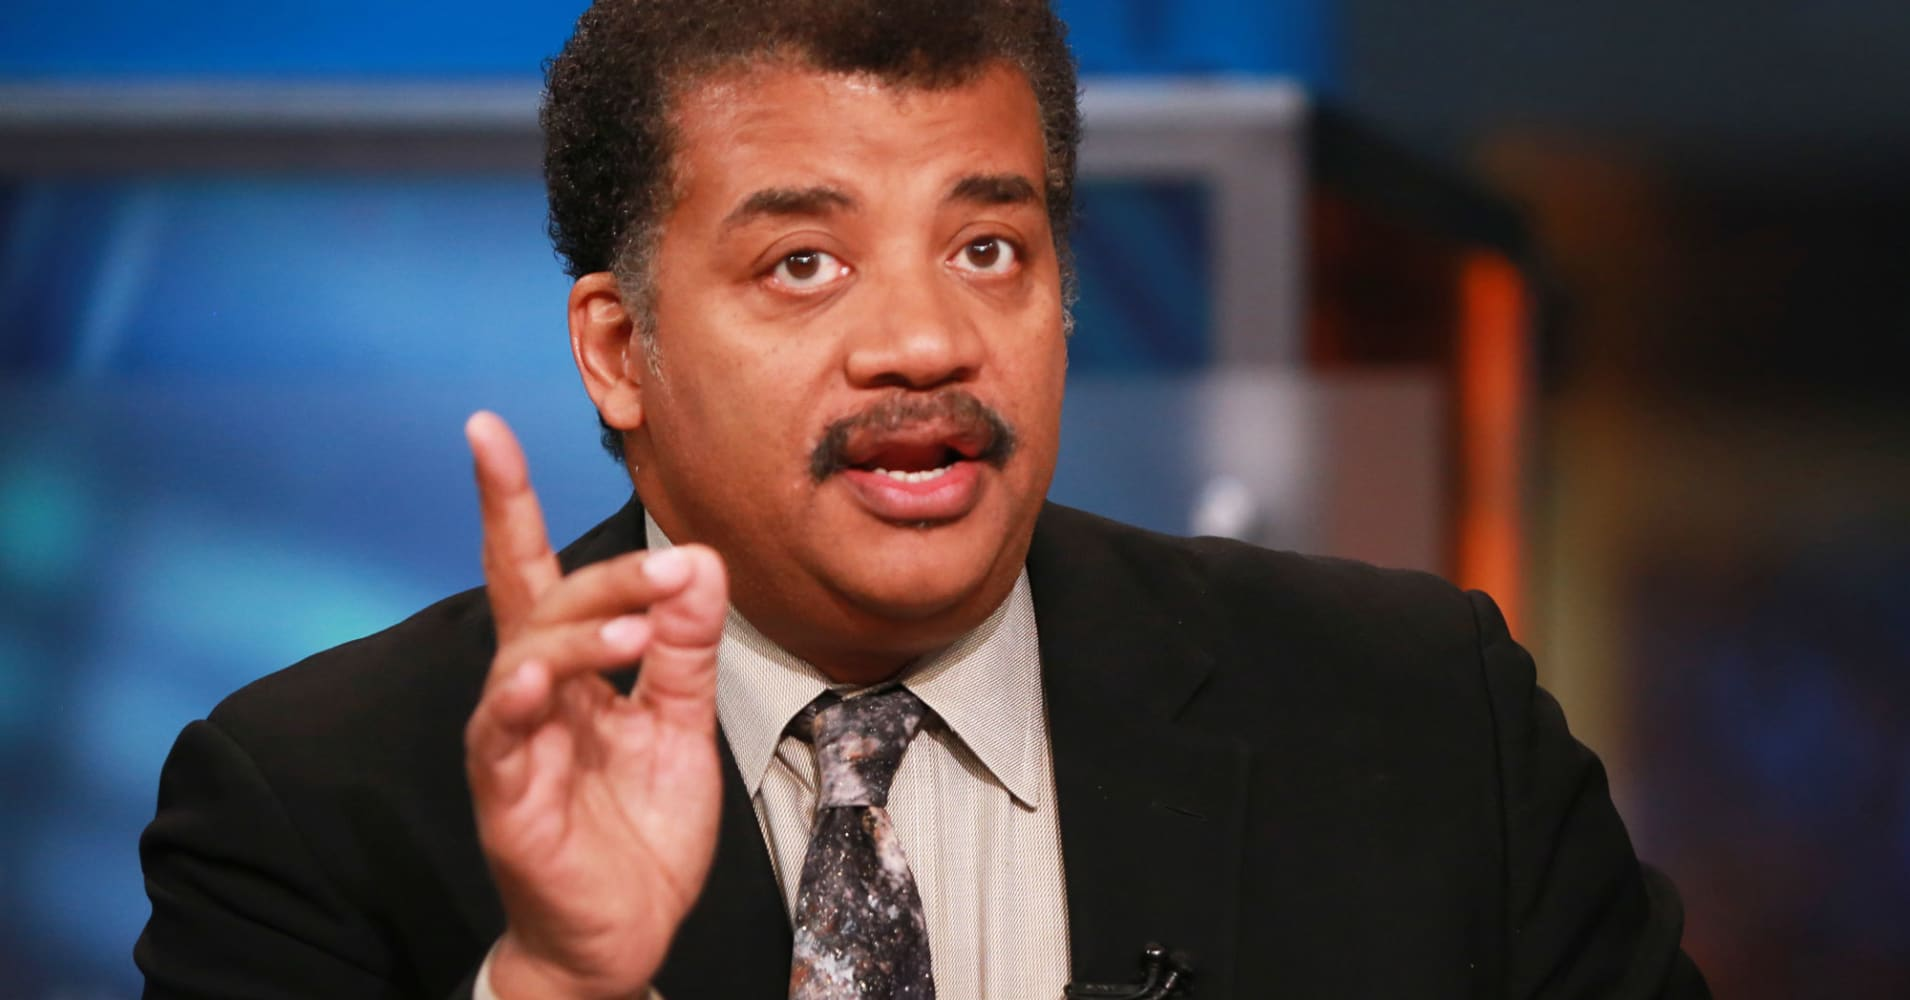 cnbc.com - Tom Huddleston Jr. - Neil deGrasse Tyson: Elon Musk is more important than Jeff Bezos, Mark Zuckerberg and Steve Jobs